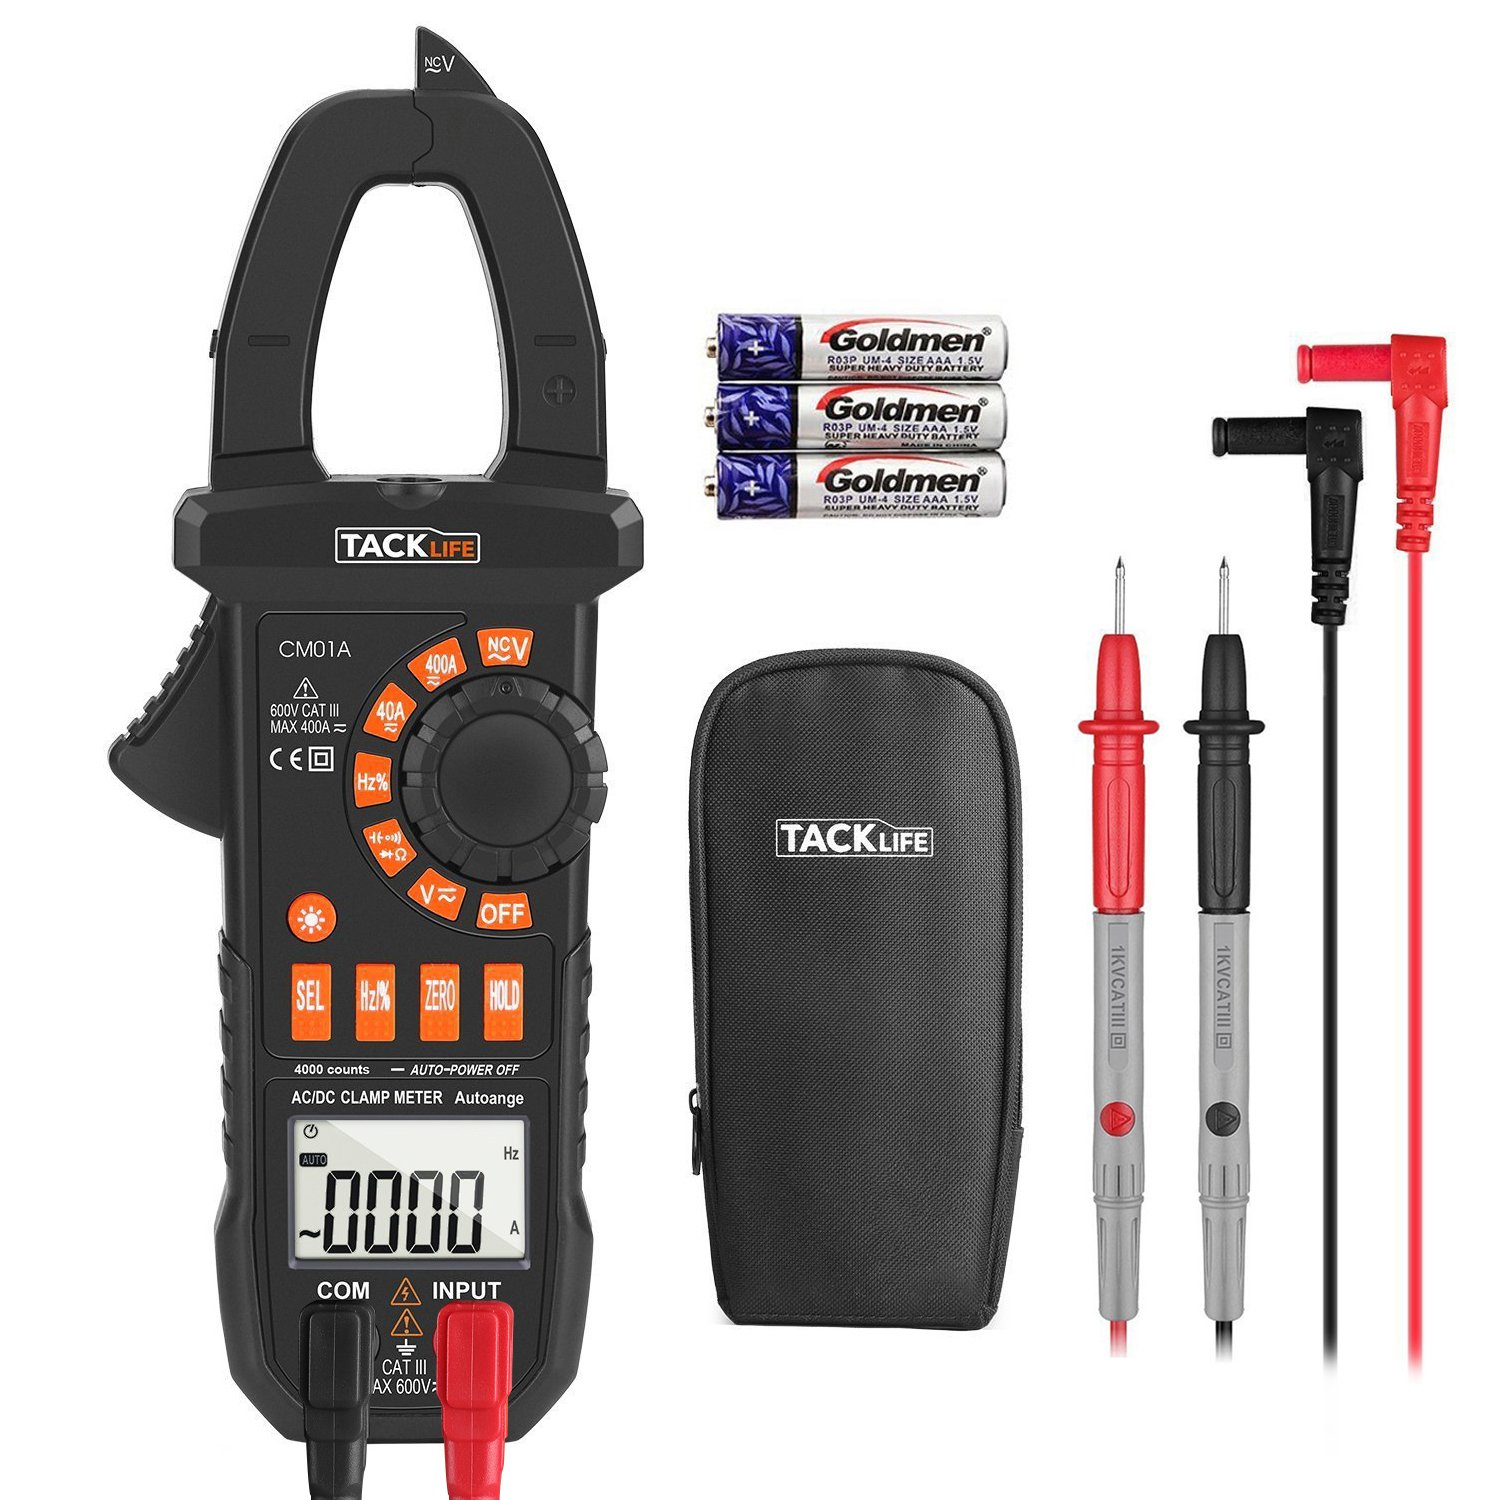 Multimeter, Tacklife CM01A Clamp Meter 4000 Counts Auto-Ranging Digital Tester with NCV, AC/DC Voltage, Current, Ohm, Continuity Electrical Tester, Diode, Resistance,Capacitance Meters by TACKLIFE (Image #1)